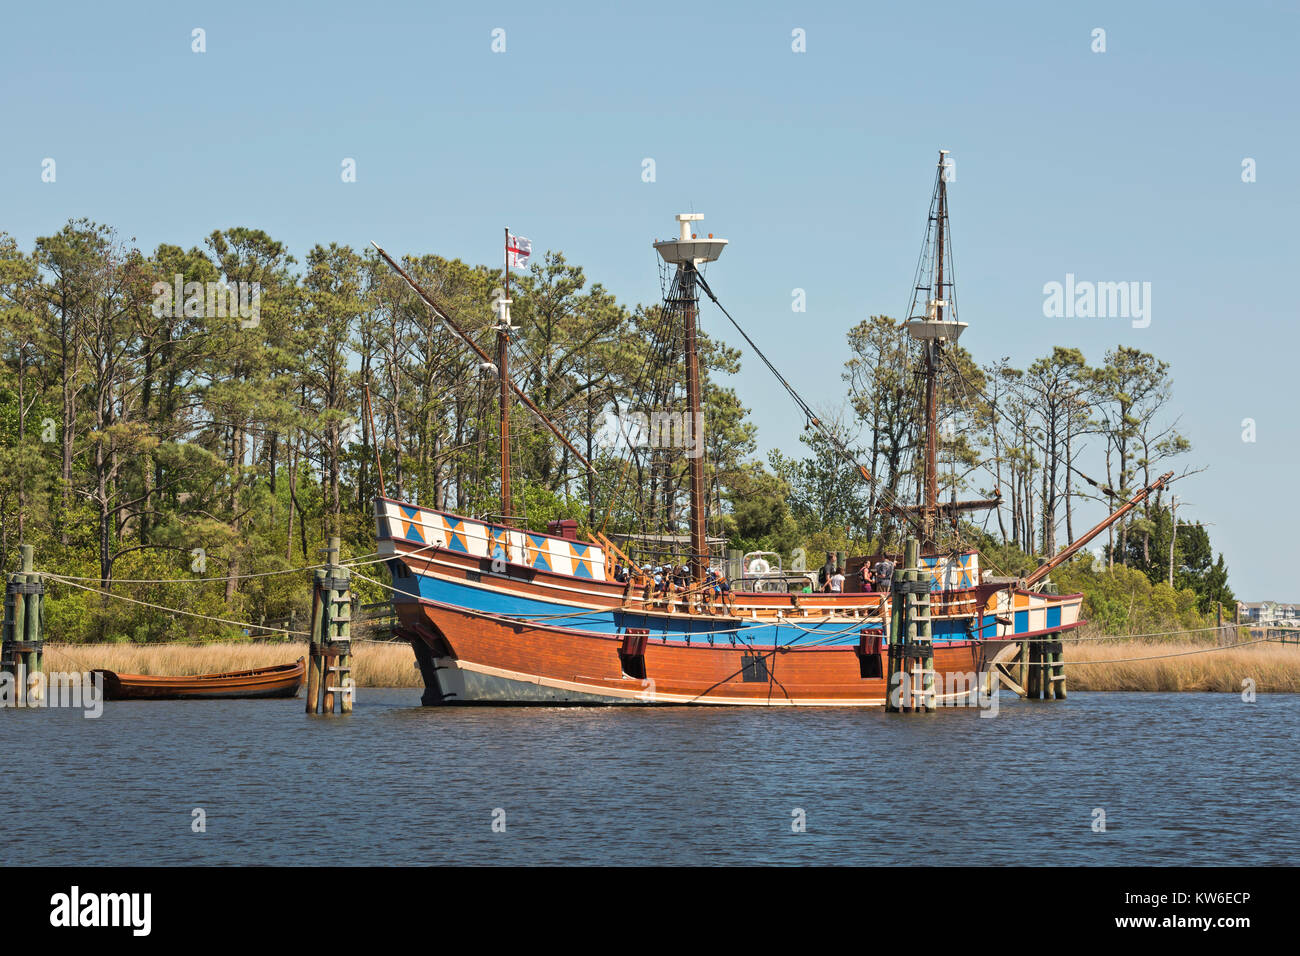 NC01197-00...NORTH CAROLINA - Visitors learning about the historic replica of the 16th Century Elizabeth ll, part - Stock Image